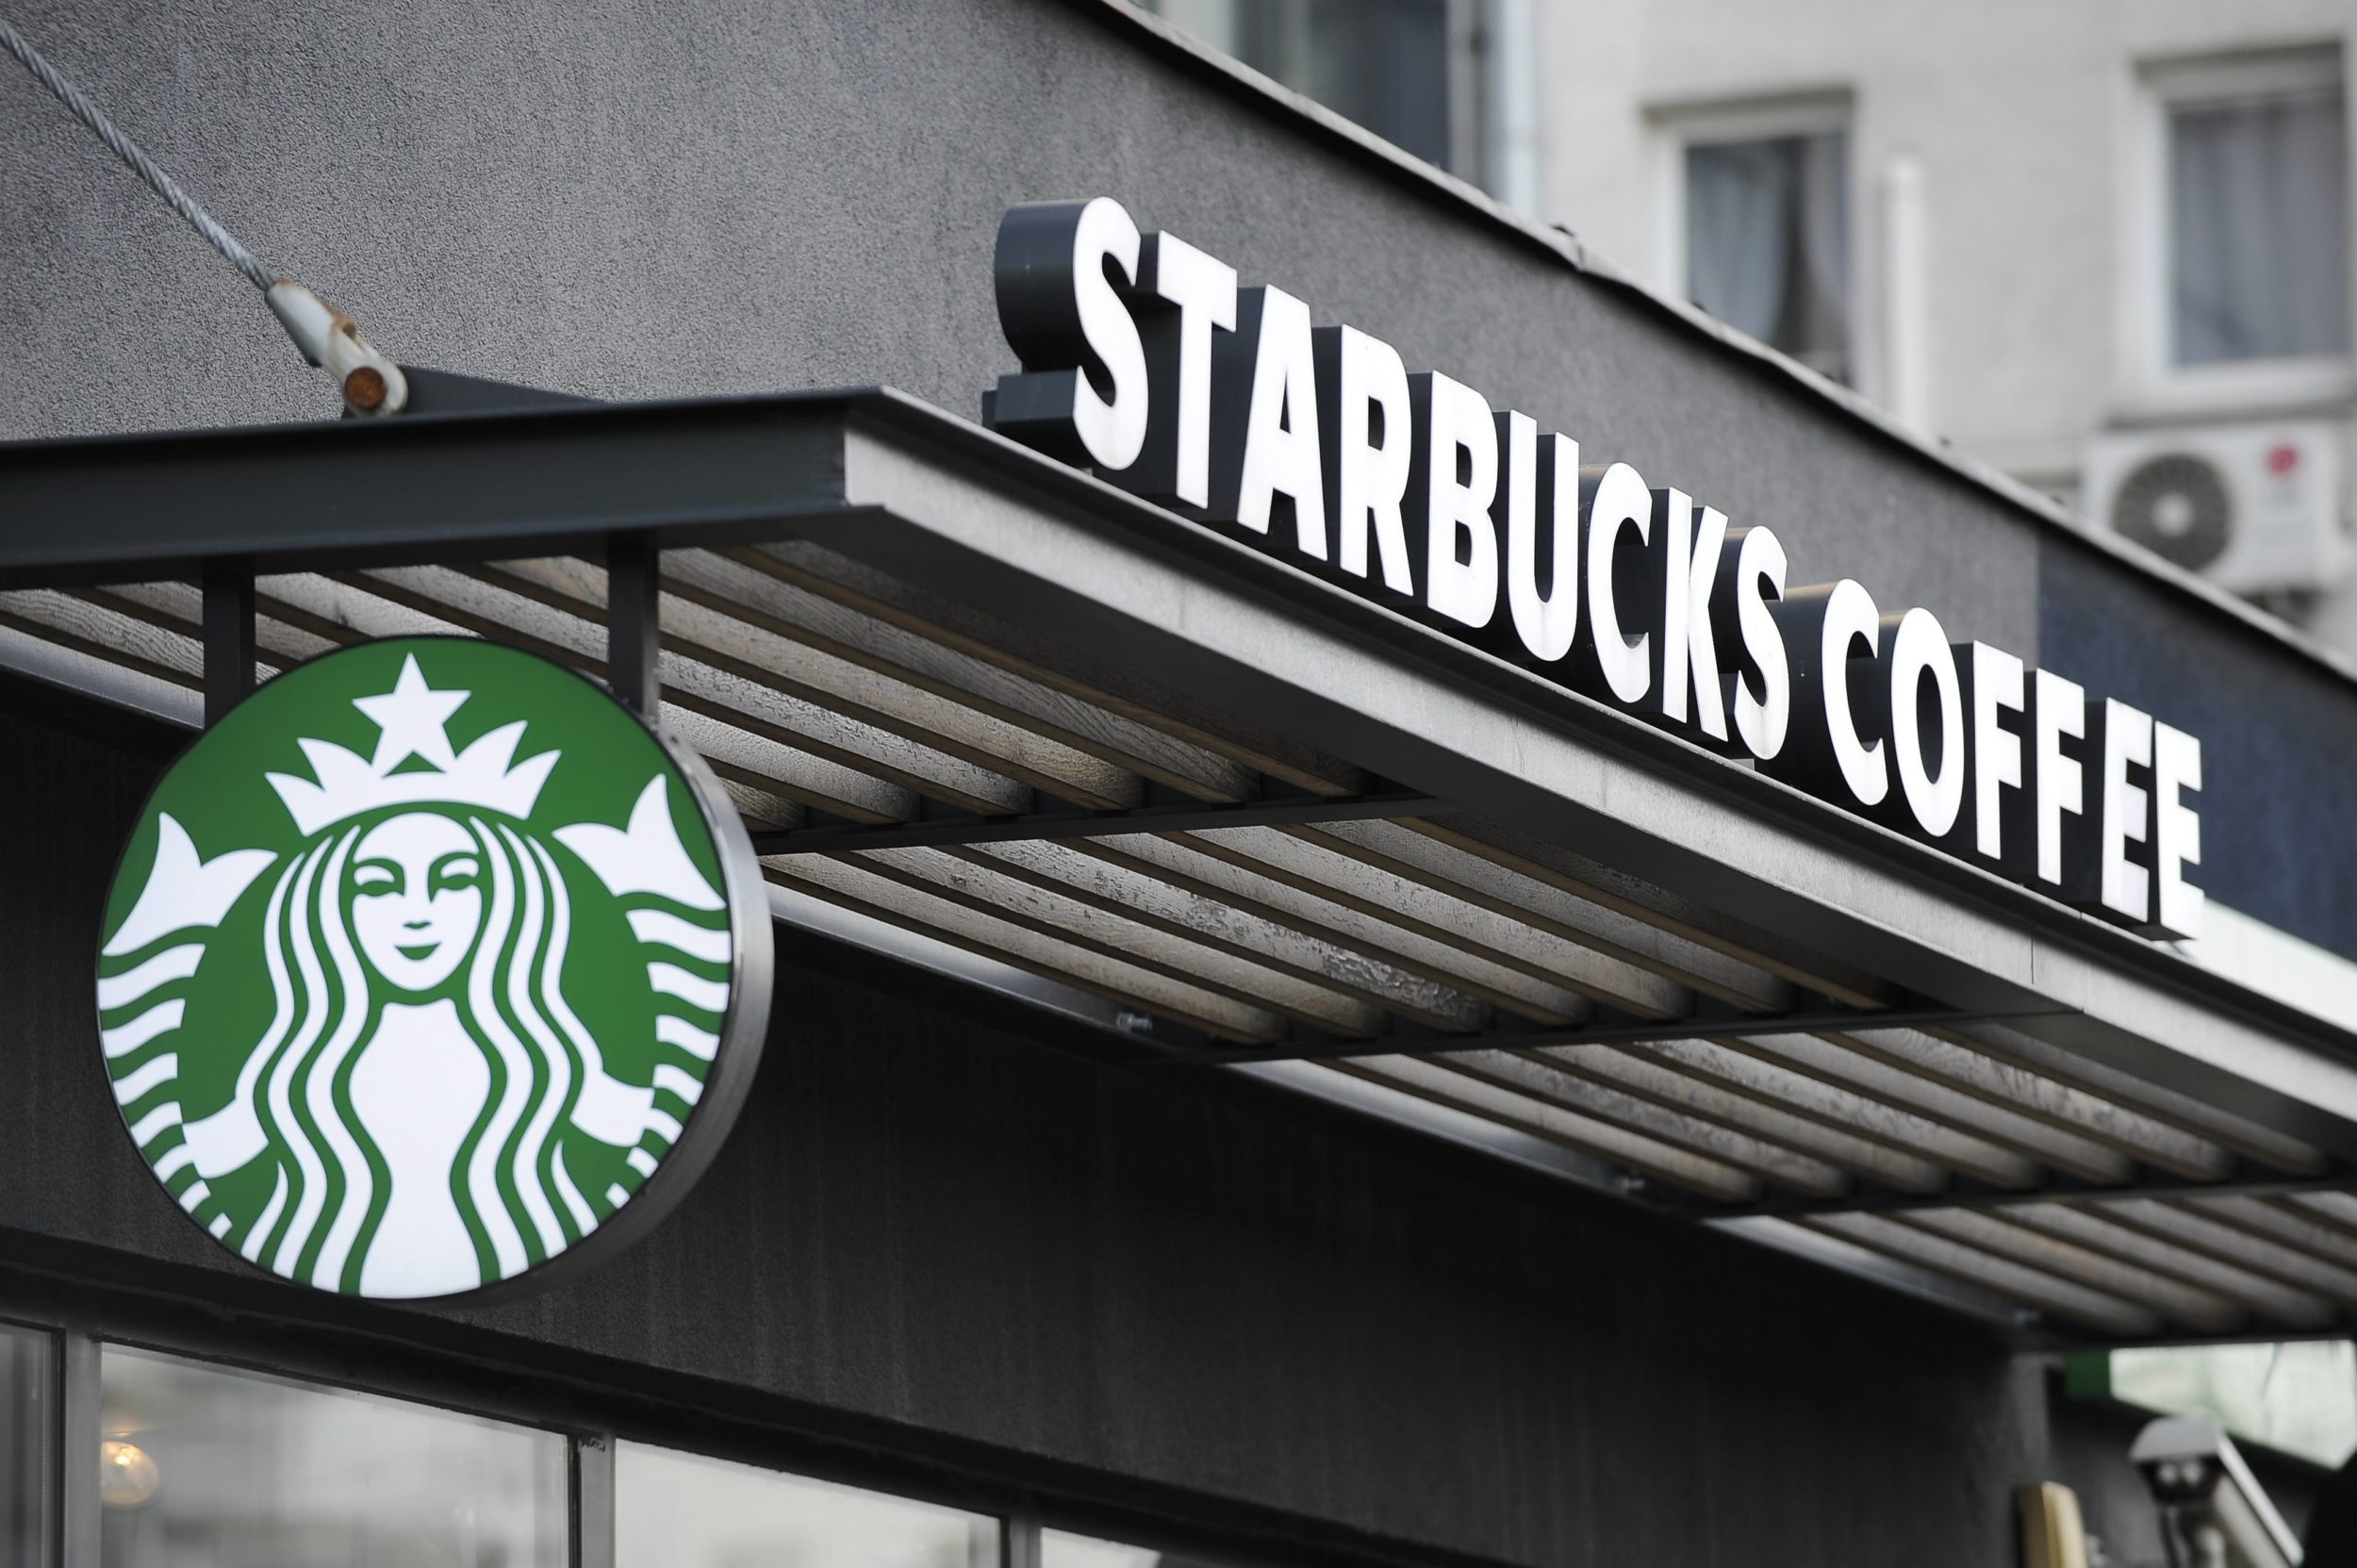 #BoycottStarbucks is trending, and the reason why is both infuriating and heartbreaking